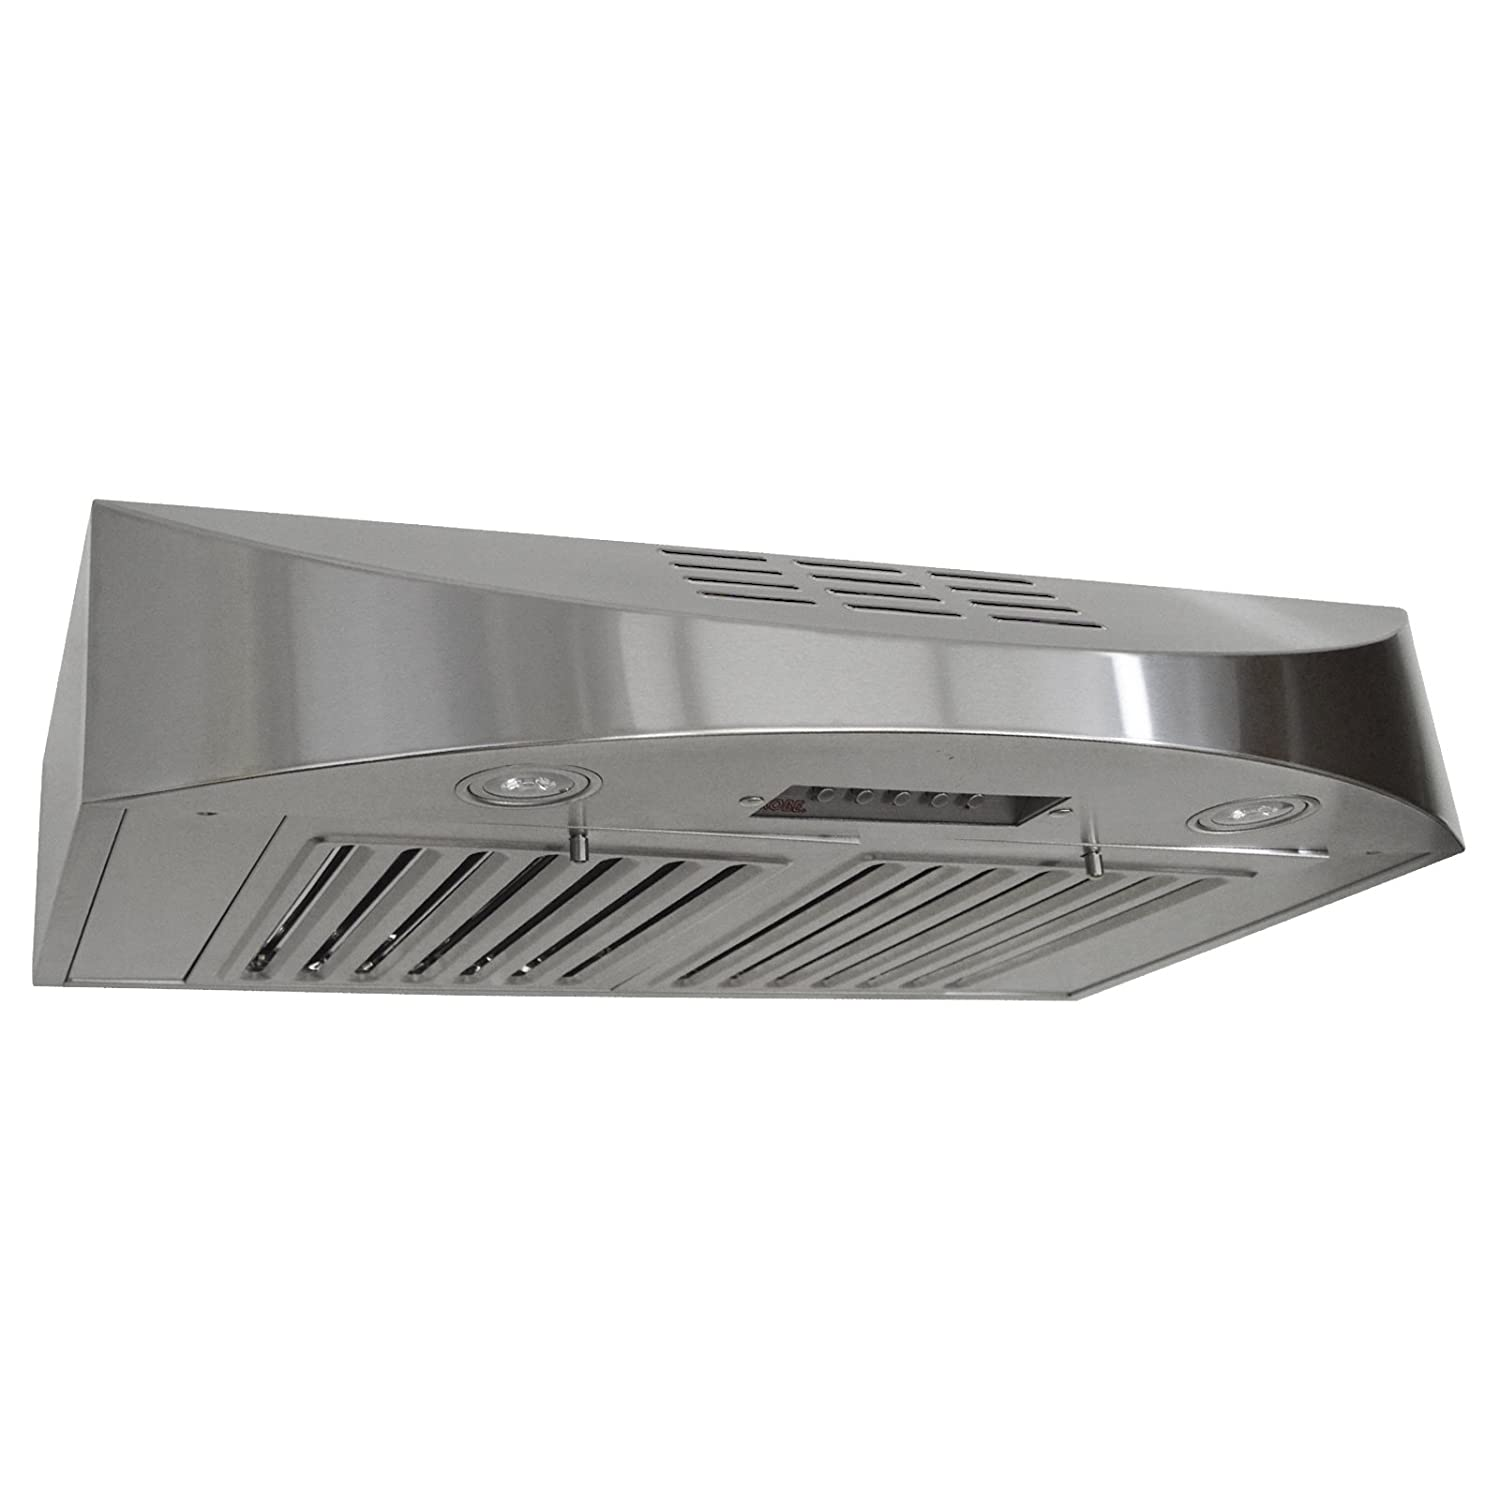 Amazon.com: KOBE CHX3830SQBD 3 Brillia 30 Inch Ductless Under Cabinet Range  Hood, 3 Speed, 400 CFM, LED Lights, Baffle Filters: Home Improvement